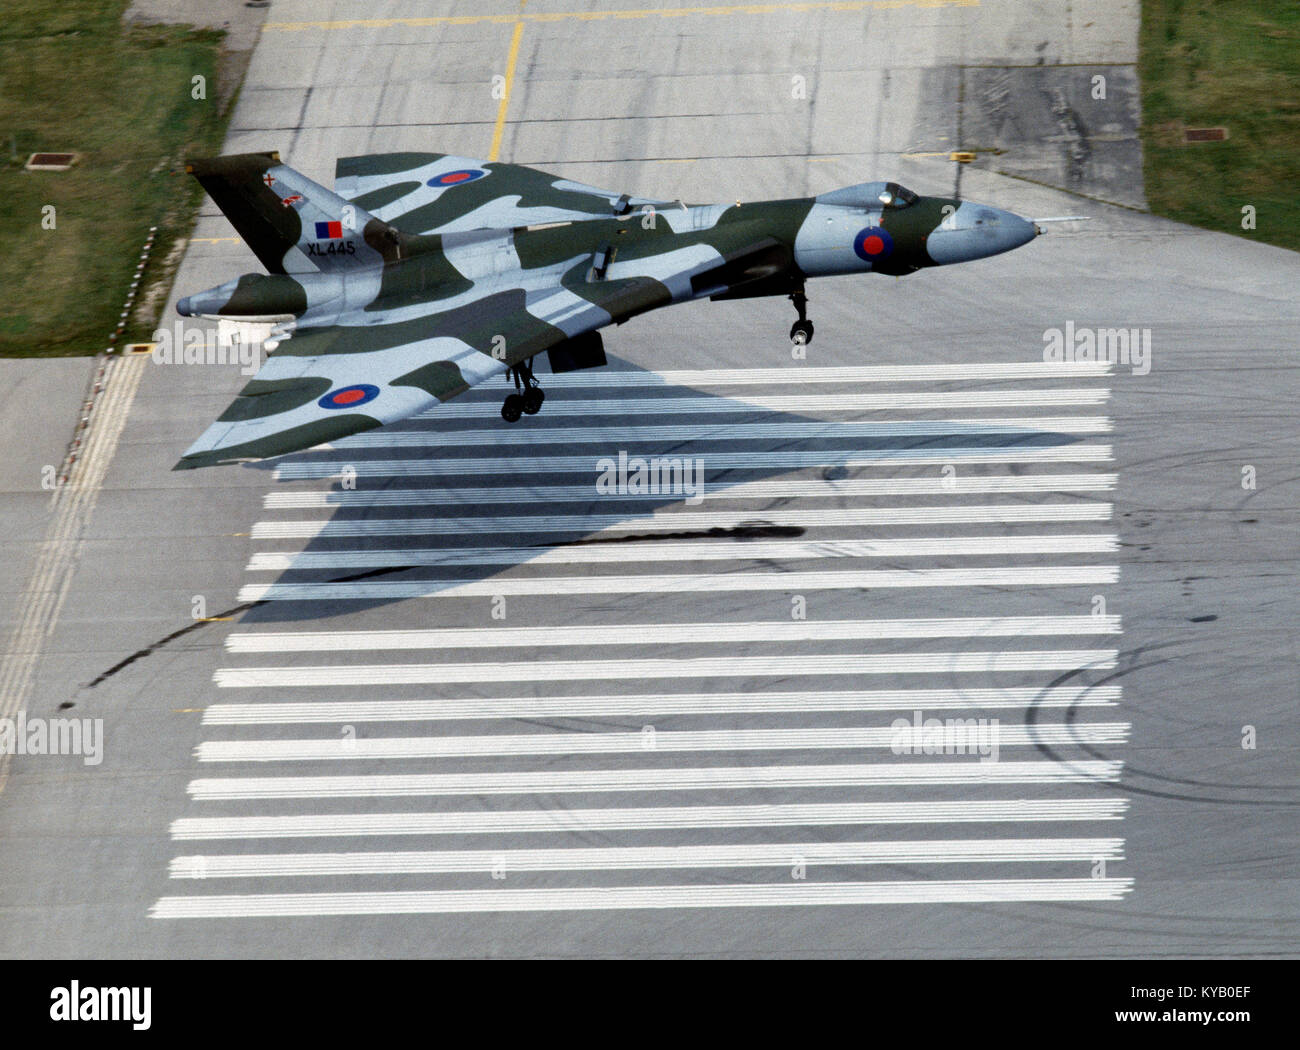 RAF Vulcan B2 (now obsolete) aircraft on final approach at Toronto International airport, Canada - Stock Image